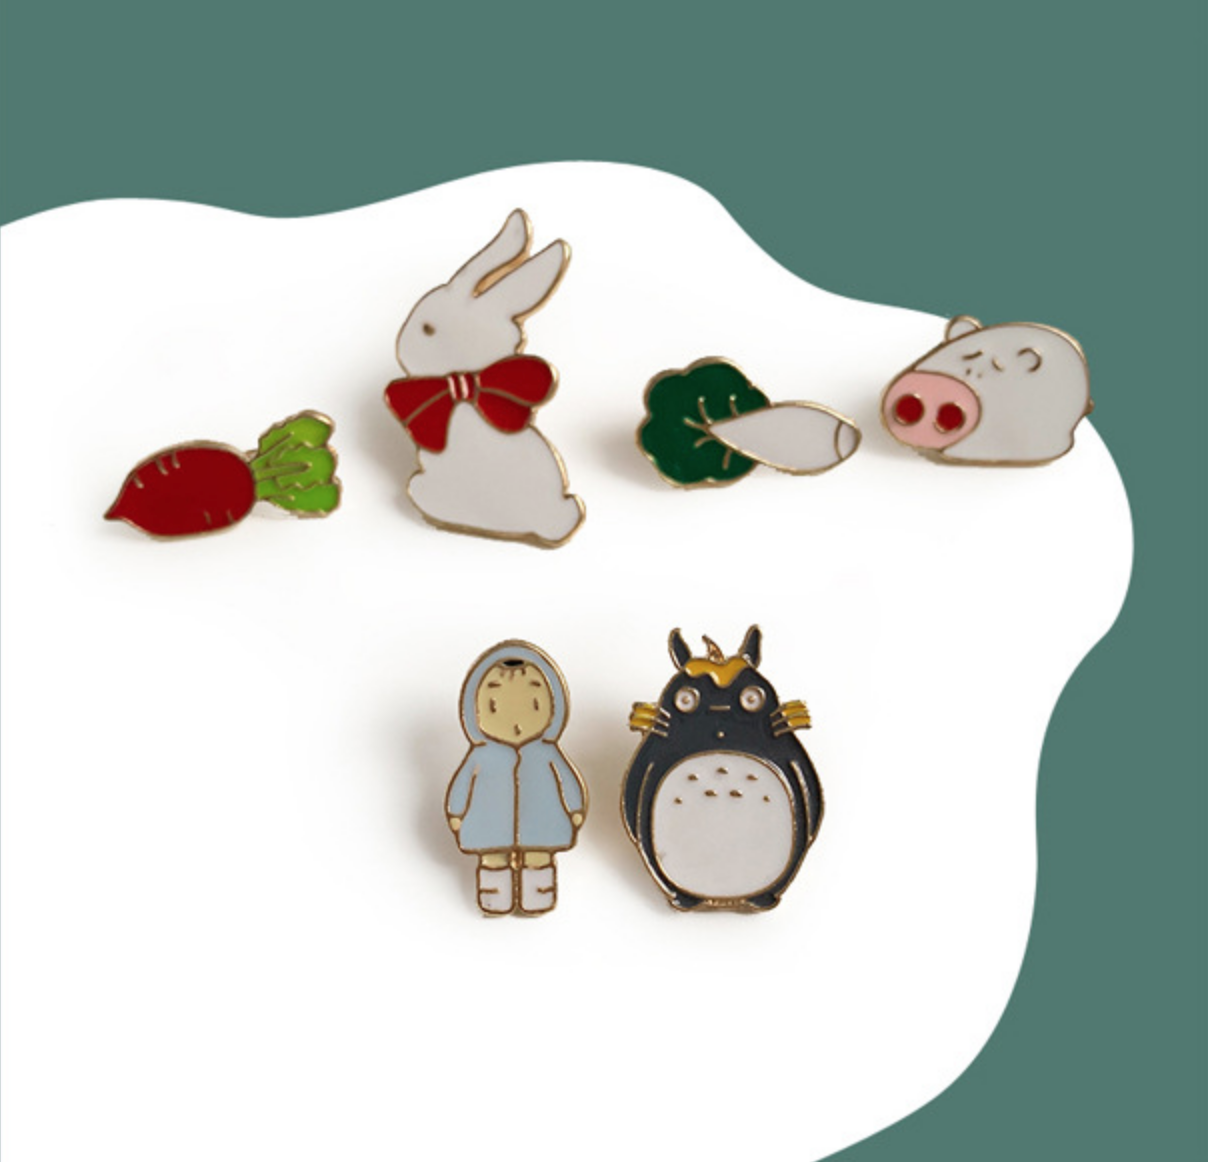 Totoro Blue Jacket Girl Pin